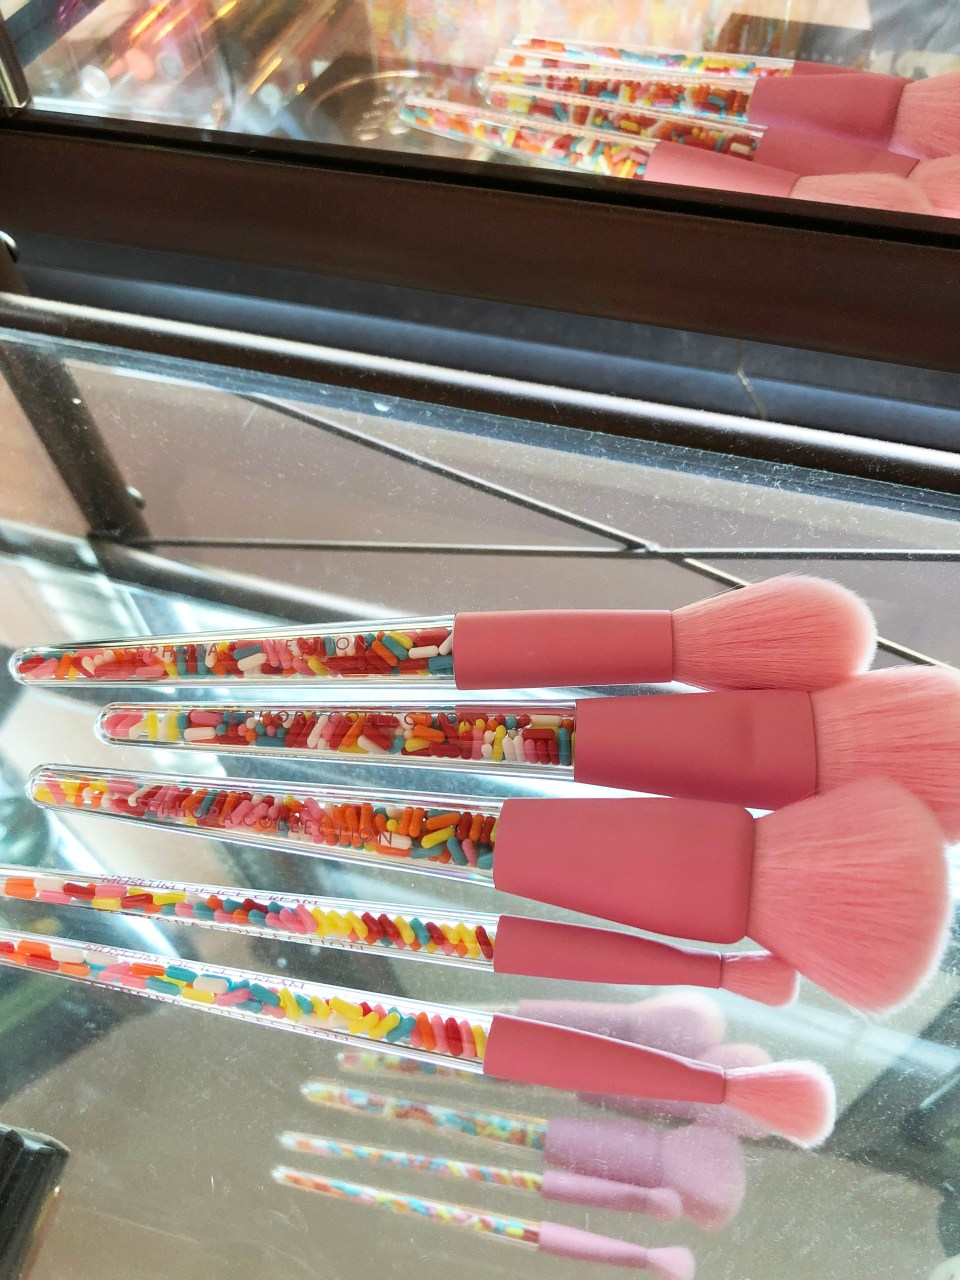 Museum of Ice Cream x Sephora - Brushes